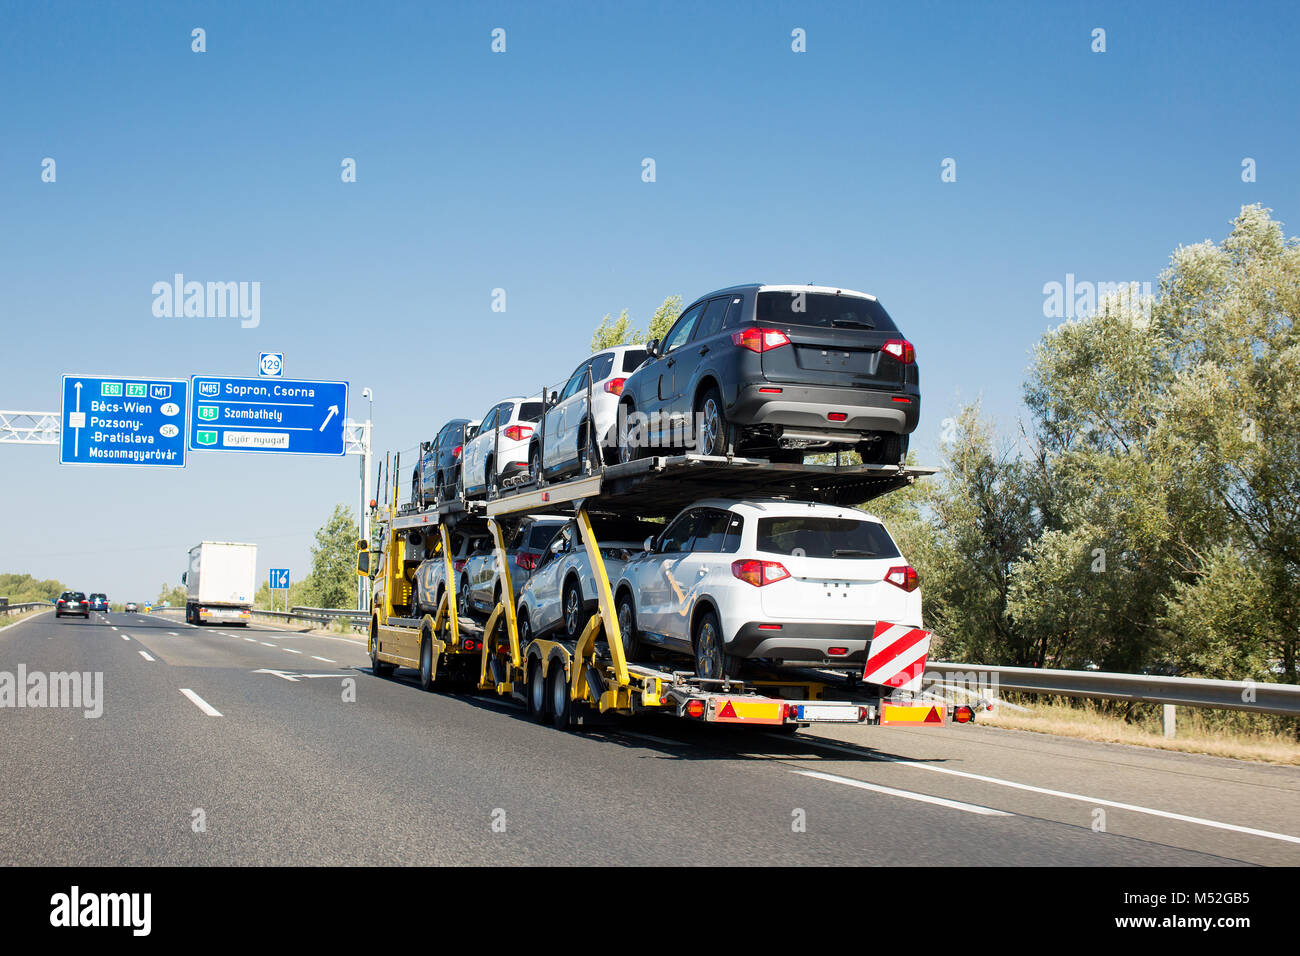 Car Carrier Trailer Truck Stock Photos & Car Carrier Trailer Truck ...